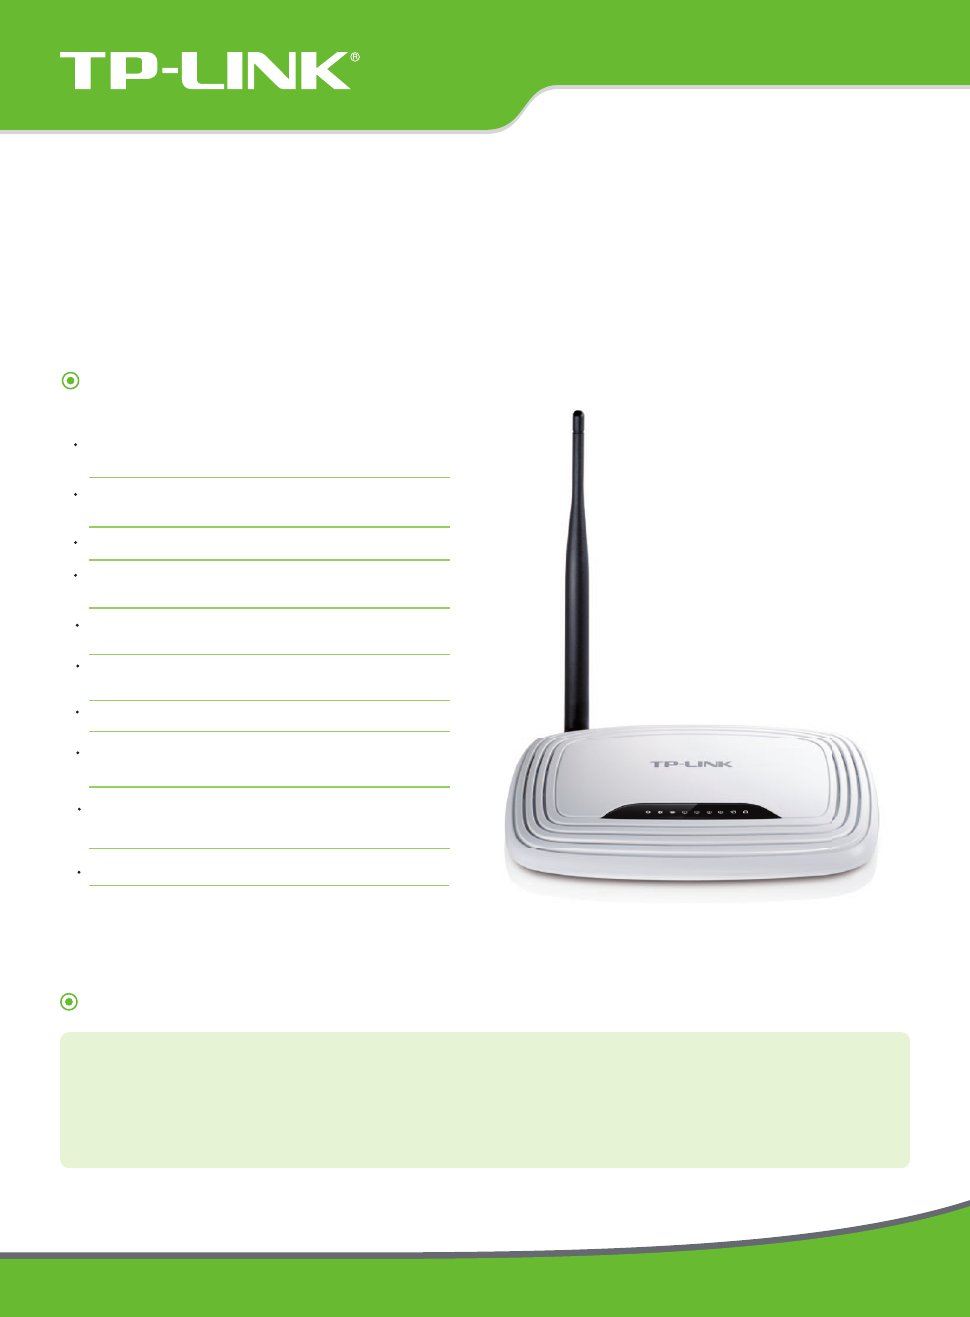 TP-Link TL-WR740N V5 Data Sheet - Free PDF Download (2 Pages)